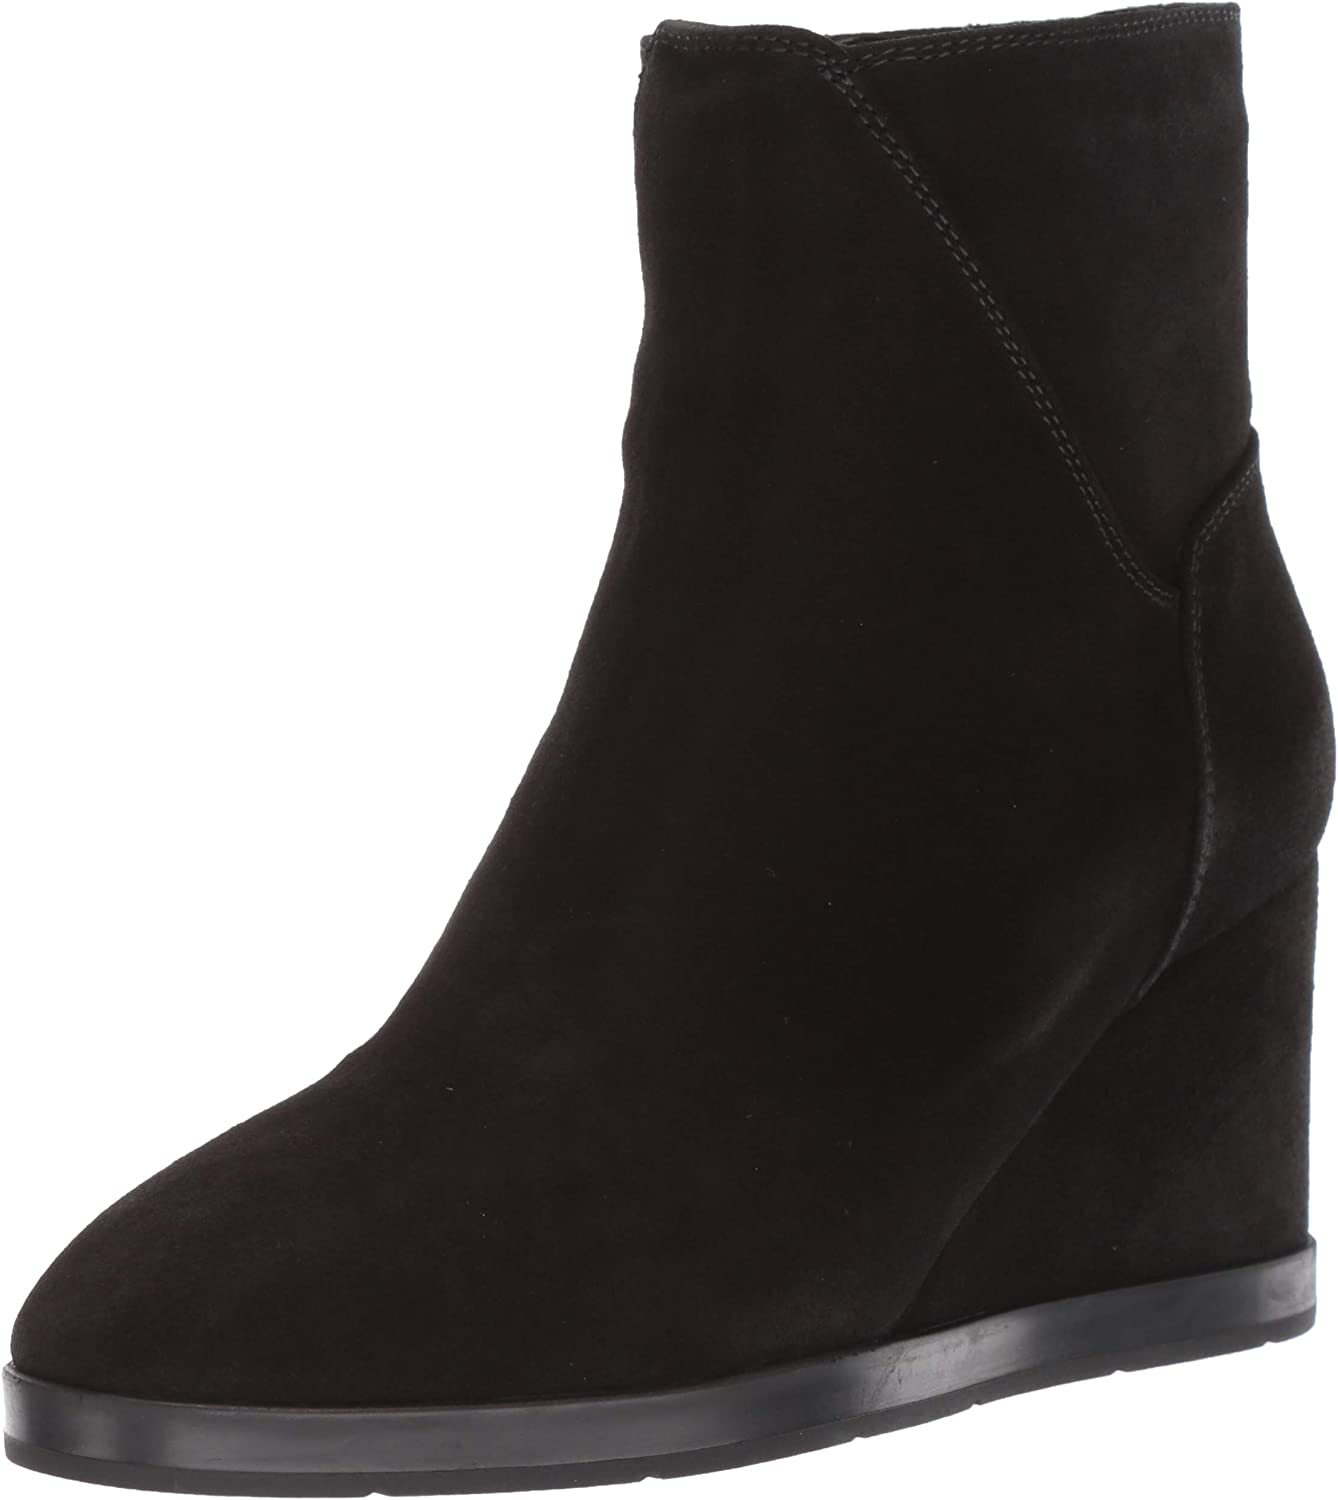 Aquatalia Women's Judy Suede Ankle Boot